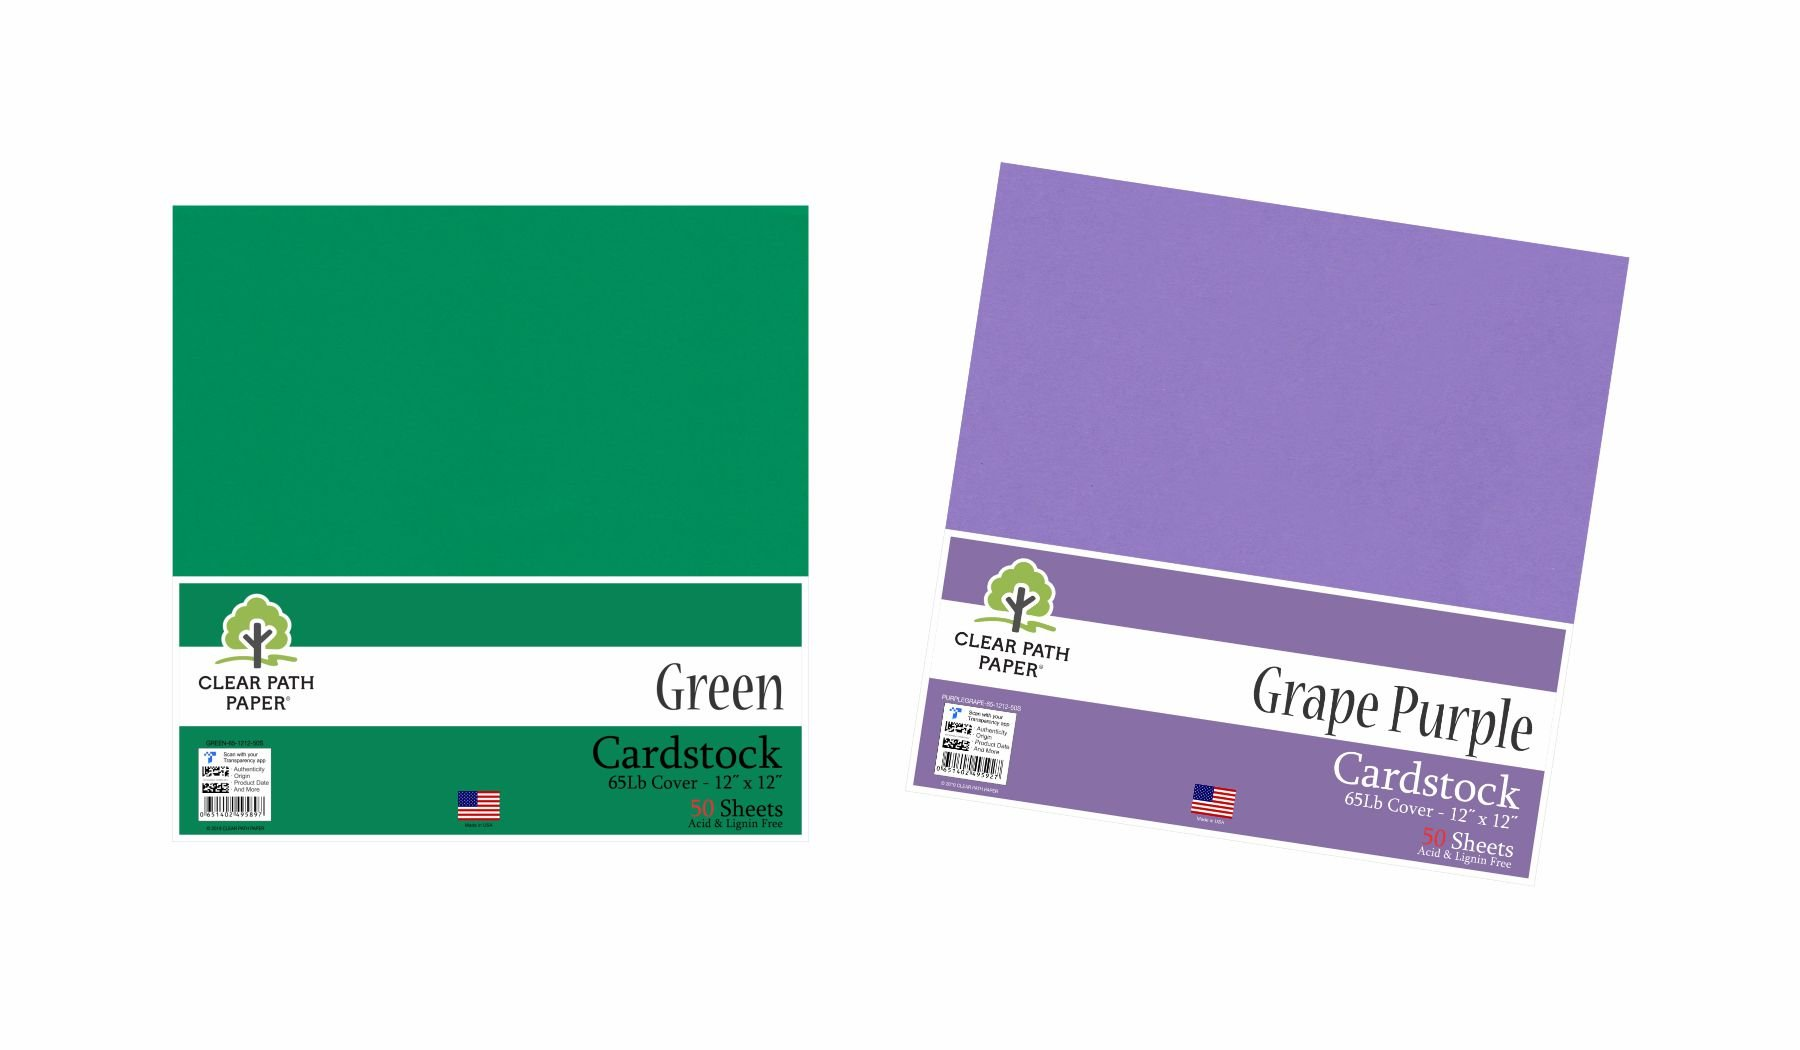 Image of an Amazon bundle of Green and Grape Purple cardstock packs